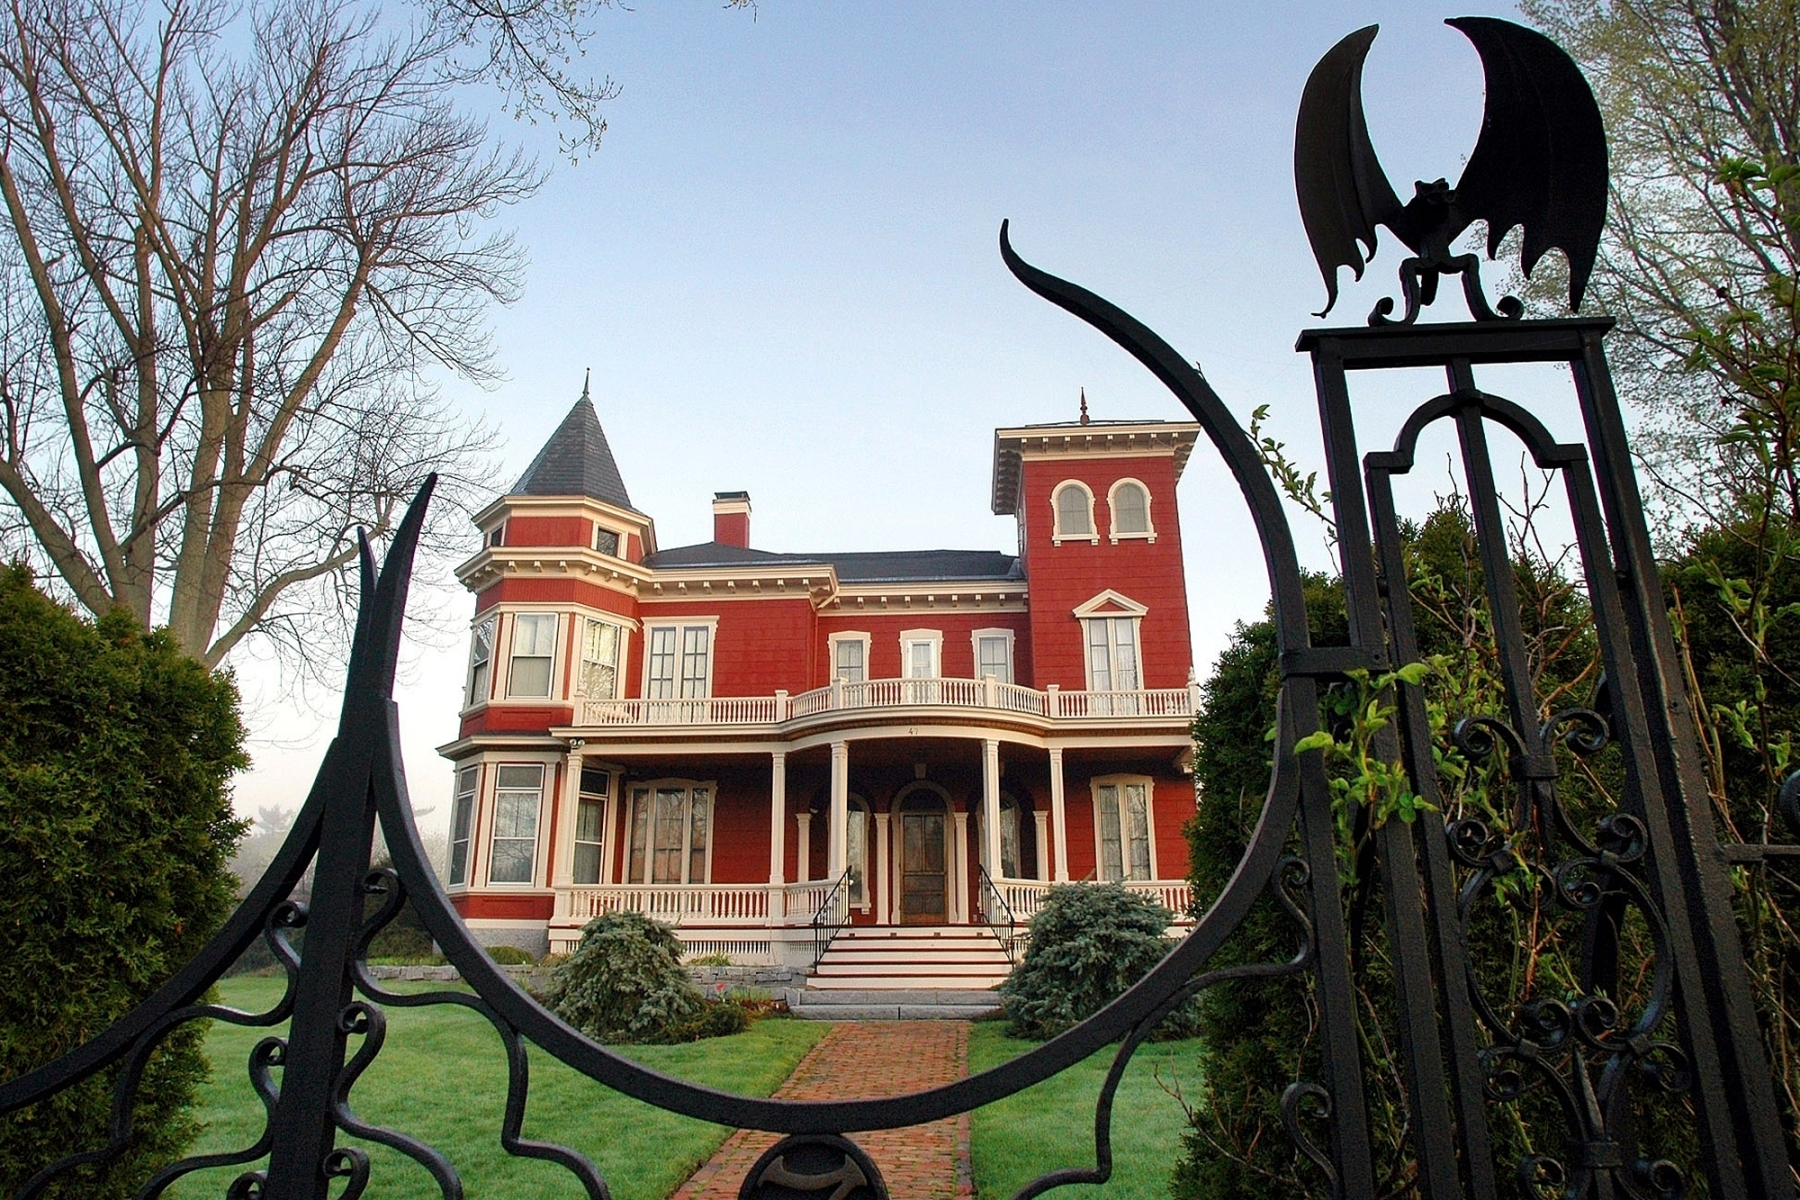 Stephen King S House To Become Archive And Writers Retreat